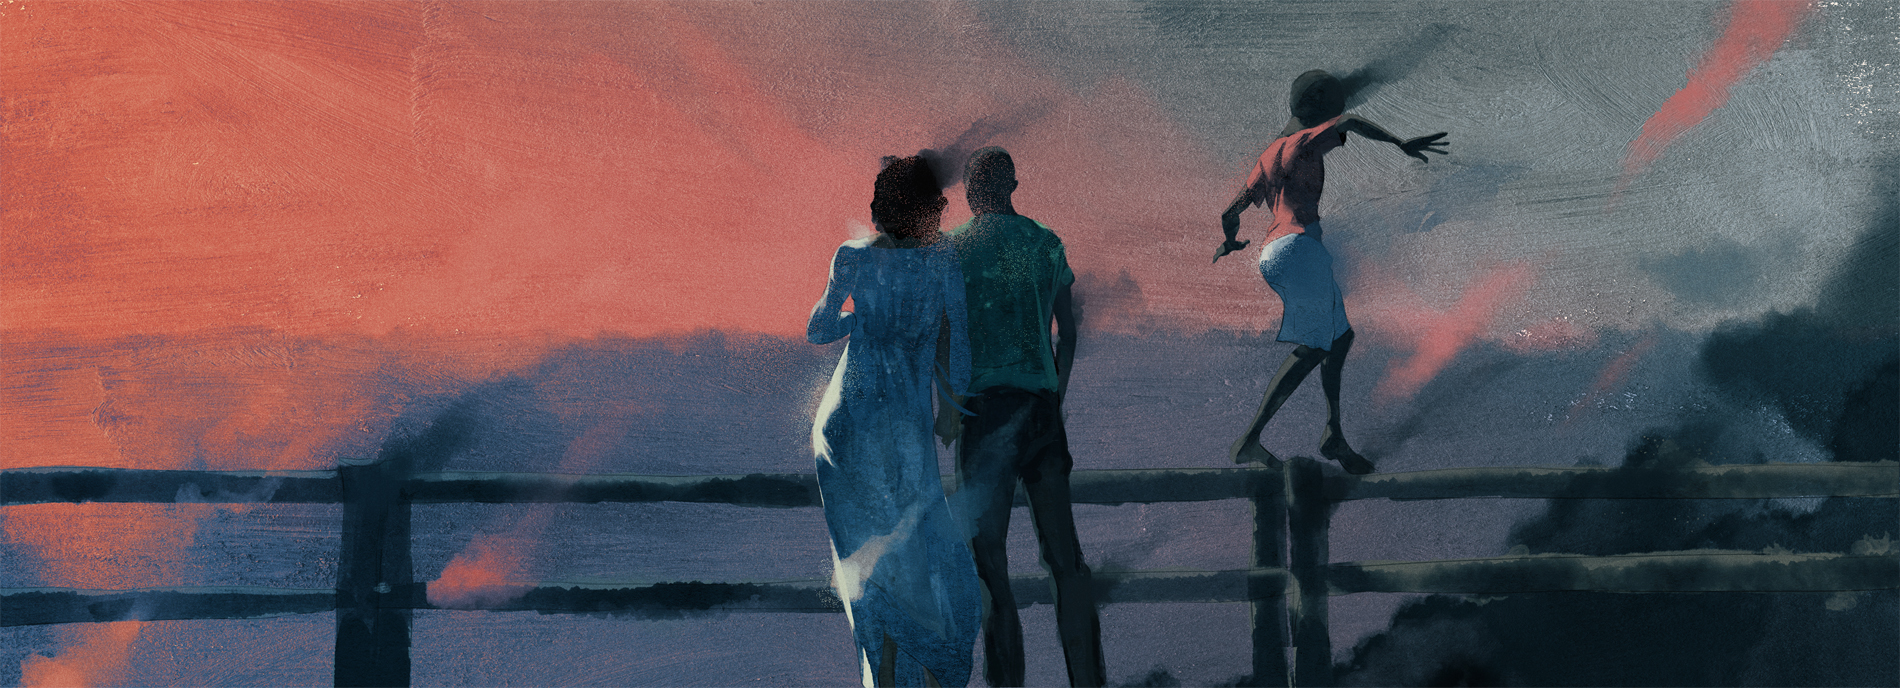 Illustration: Parents looking over a railing into a river, while a child balances on the railing beside them.